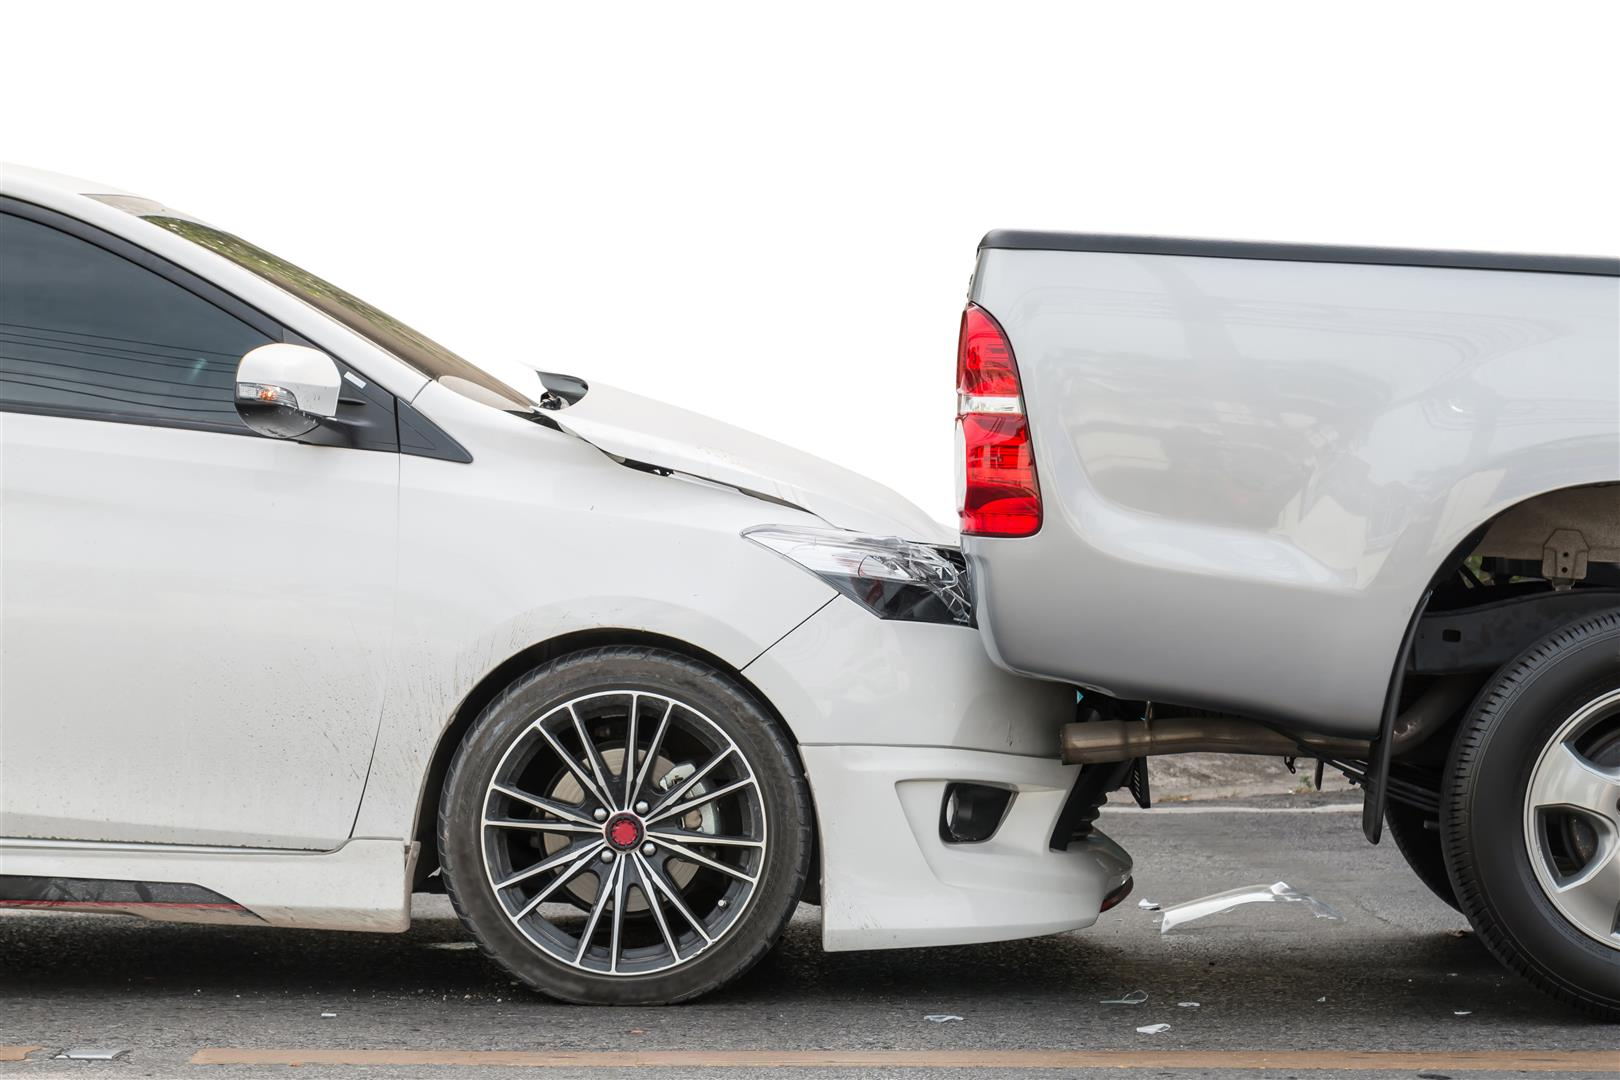 Pay Attention to Your Car After a Minor Fender Bender